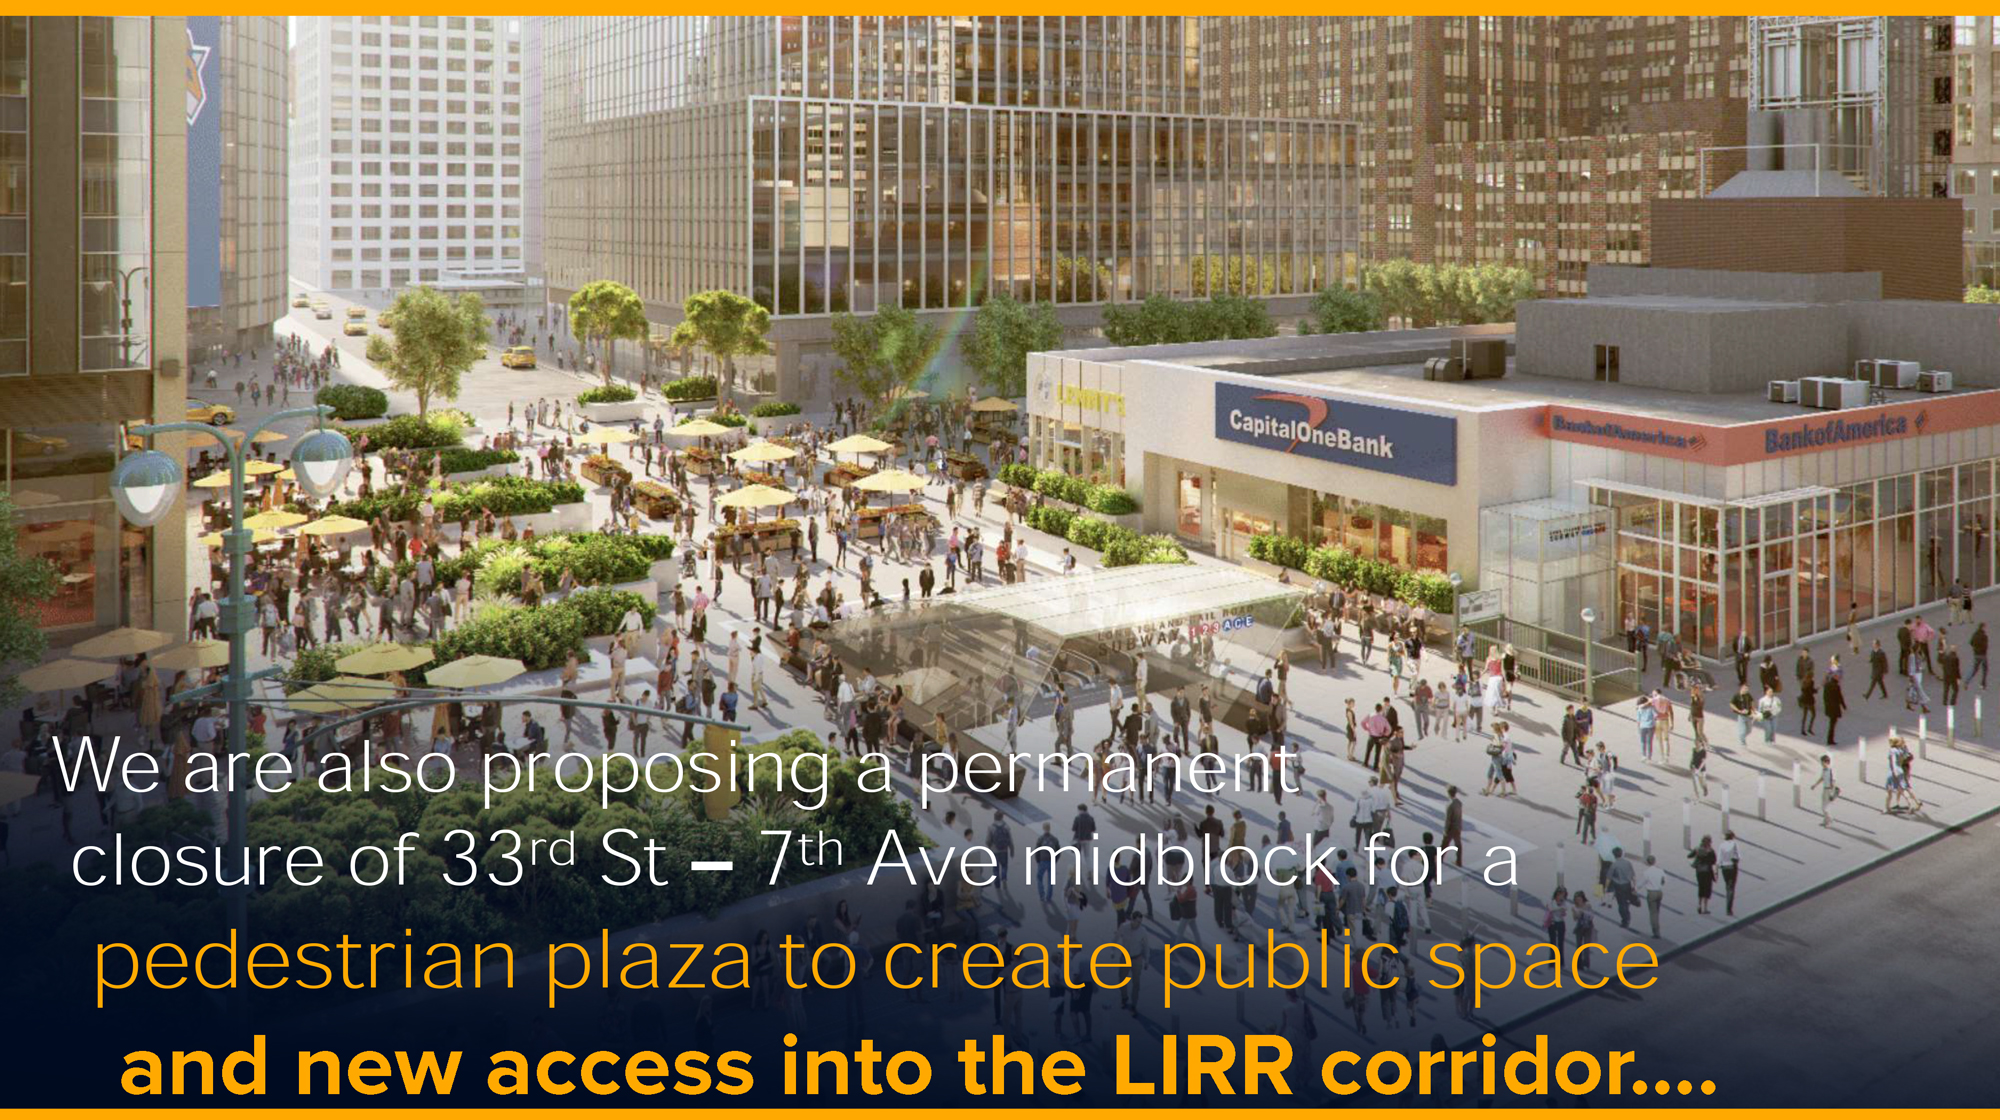 cuomo reveals new lirr entrance and public plaza at penn station 6sqft